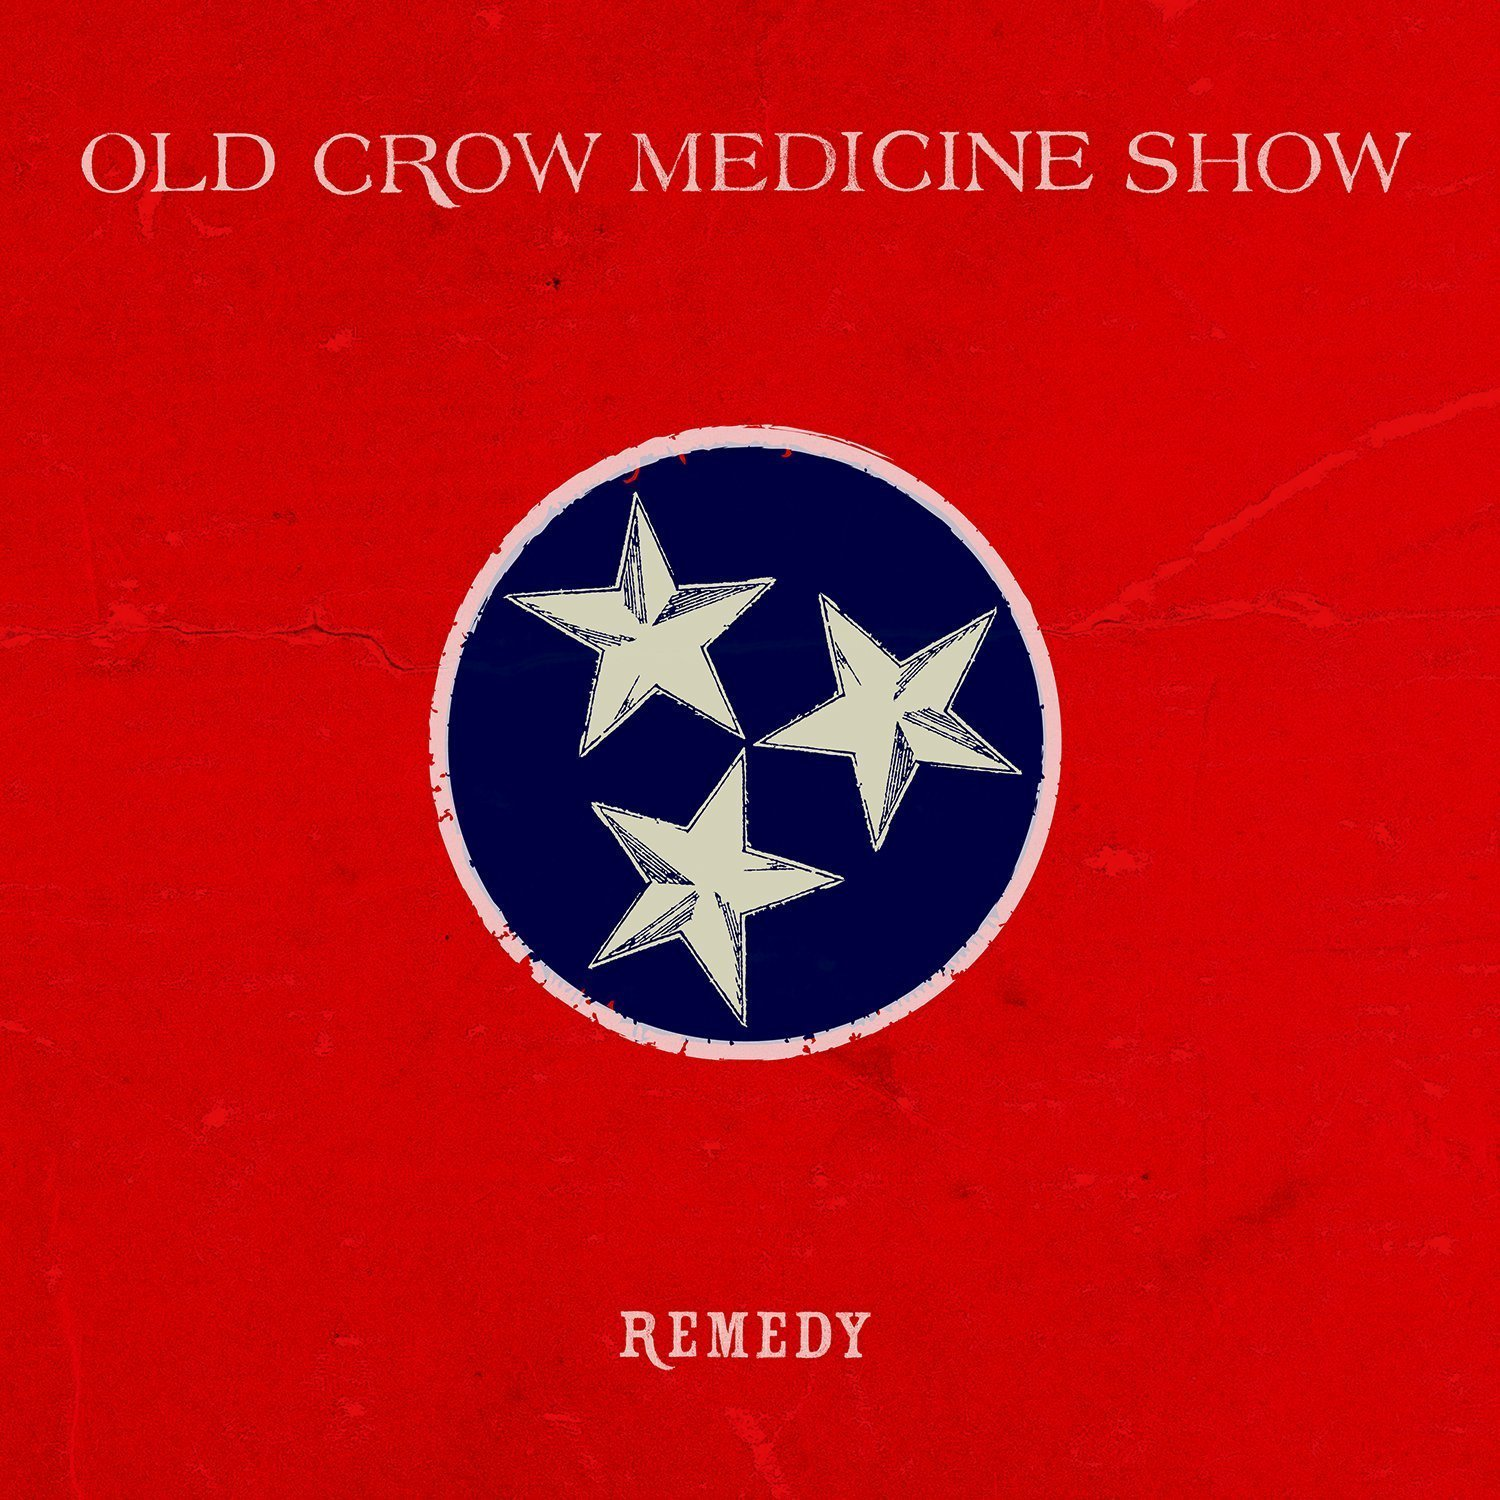 old-crow-medicine-show-album-cover-art